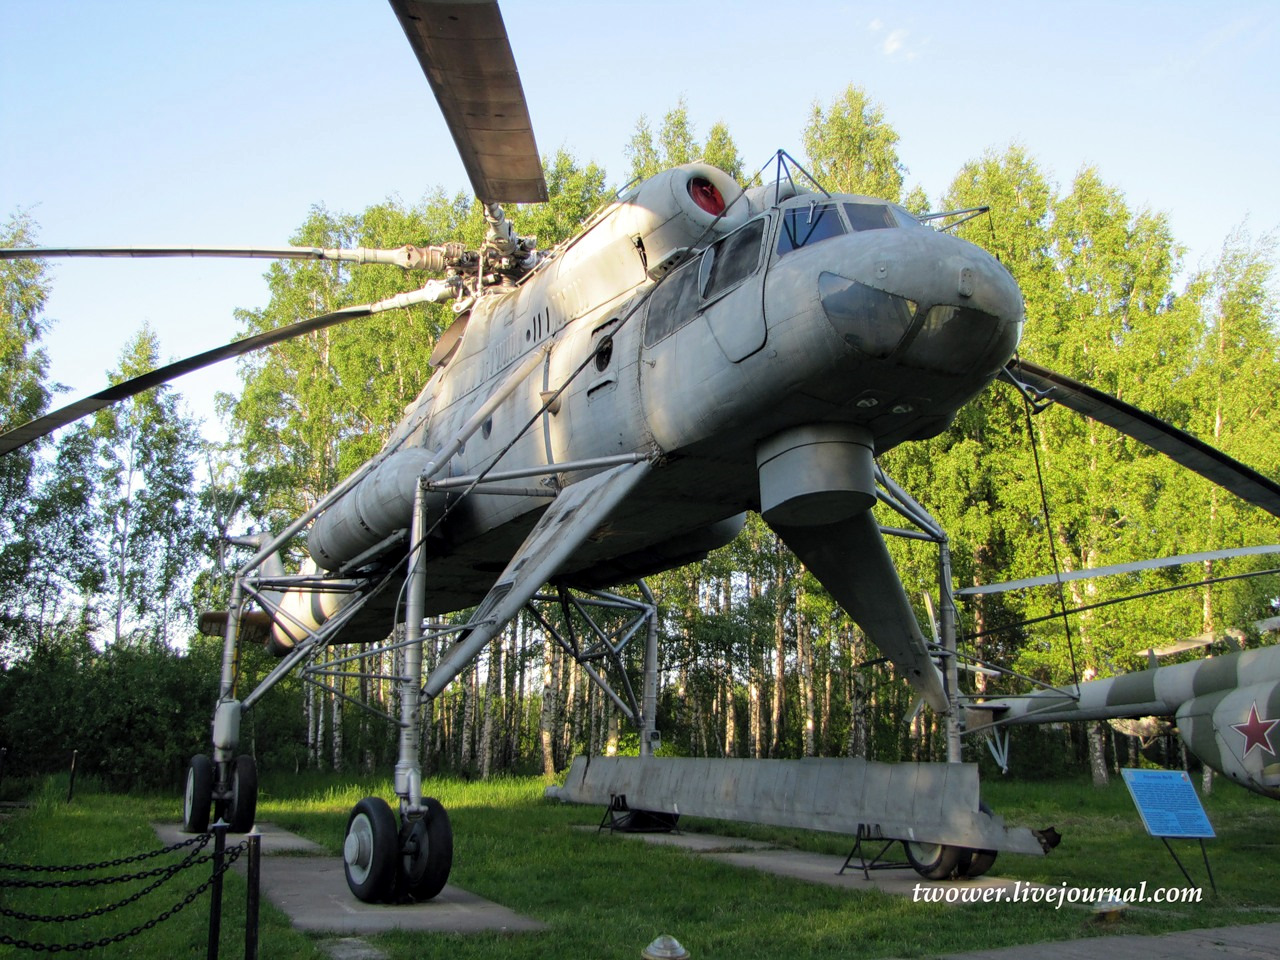 mi 26 helicopter price with The Museum Of Soviet Helicopters In Torzhok on 2001 Roadster For Sale 1098496 together with Pp 009113151939 together with Mil Mi 26 Military Heavy Multi Purpose Helicopter 1 144 Eastern Express 14502 besides Rolls Royce Dawn Mega Full Canadel Panelling For Sale 1185962 in addition 03867.